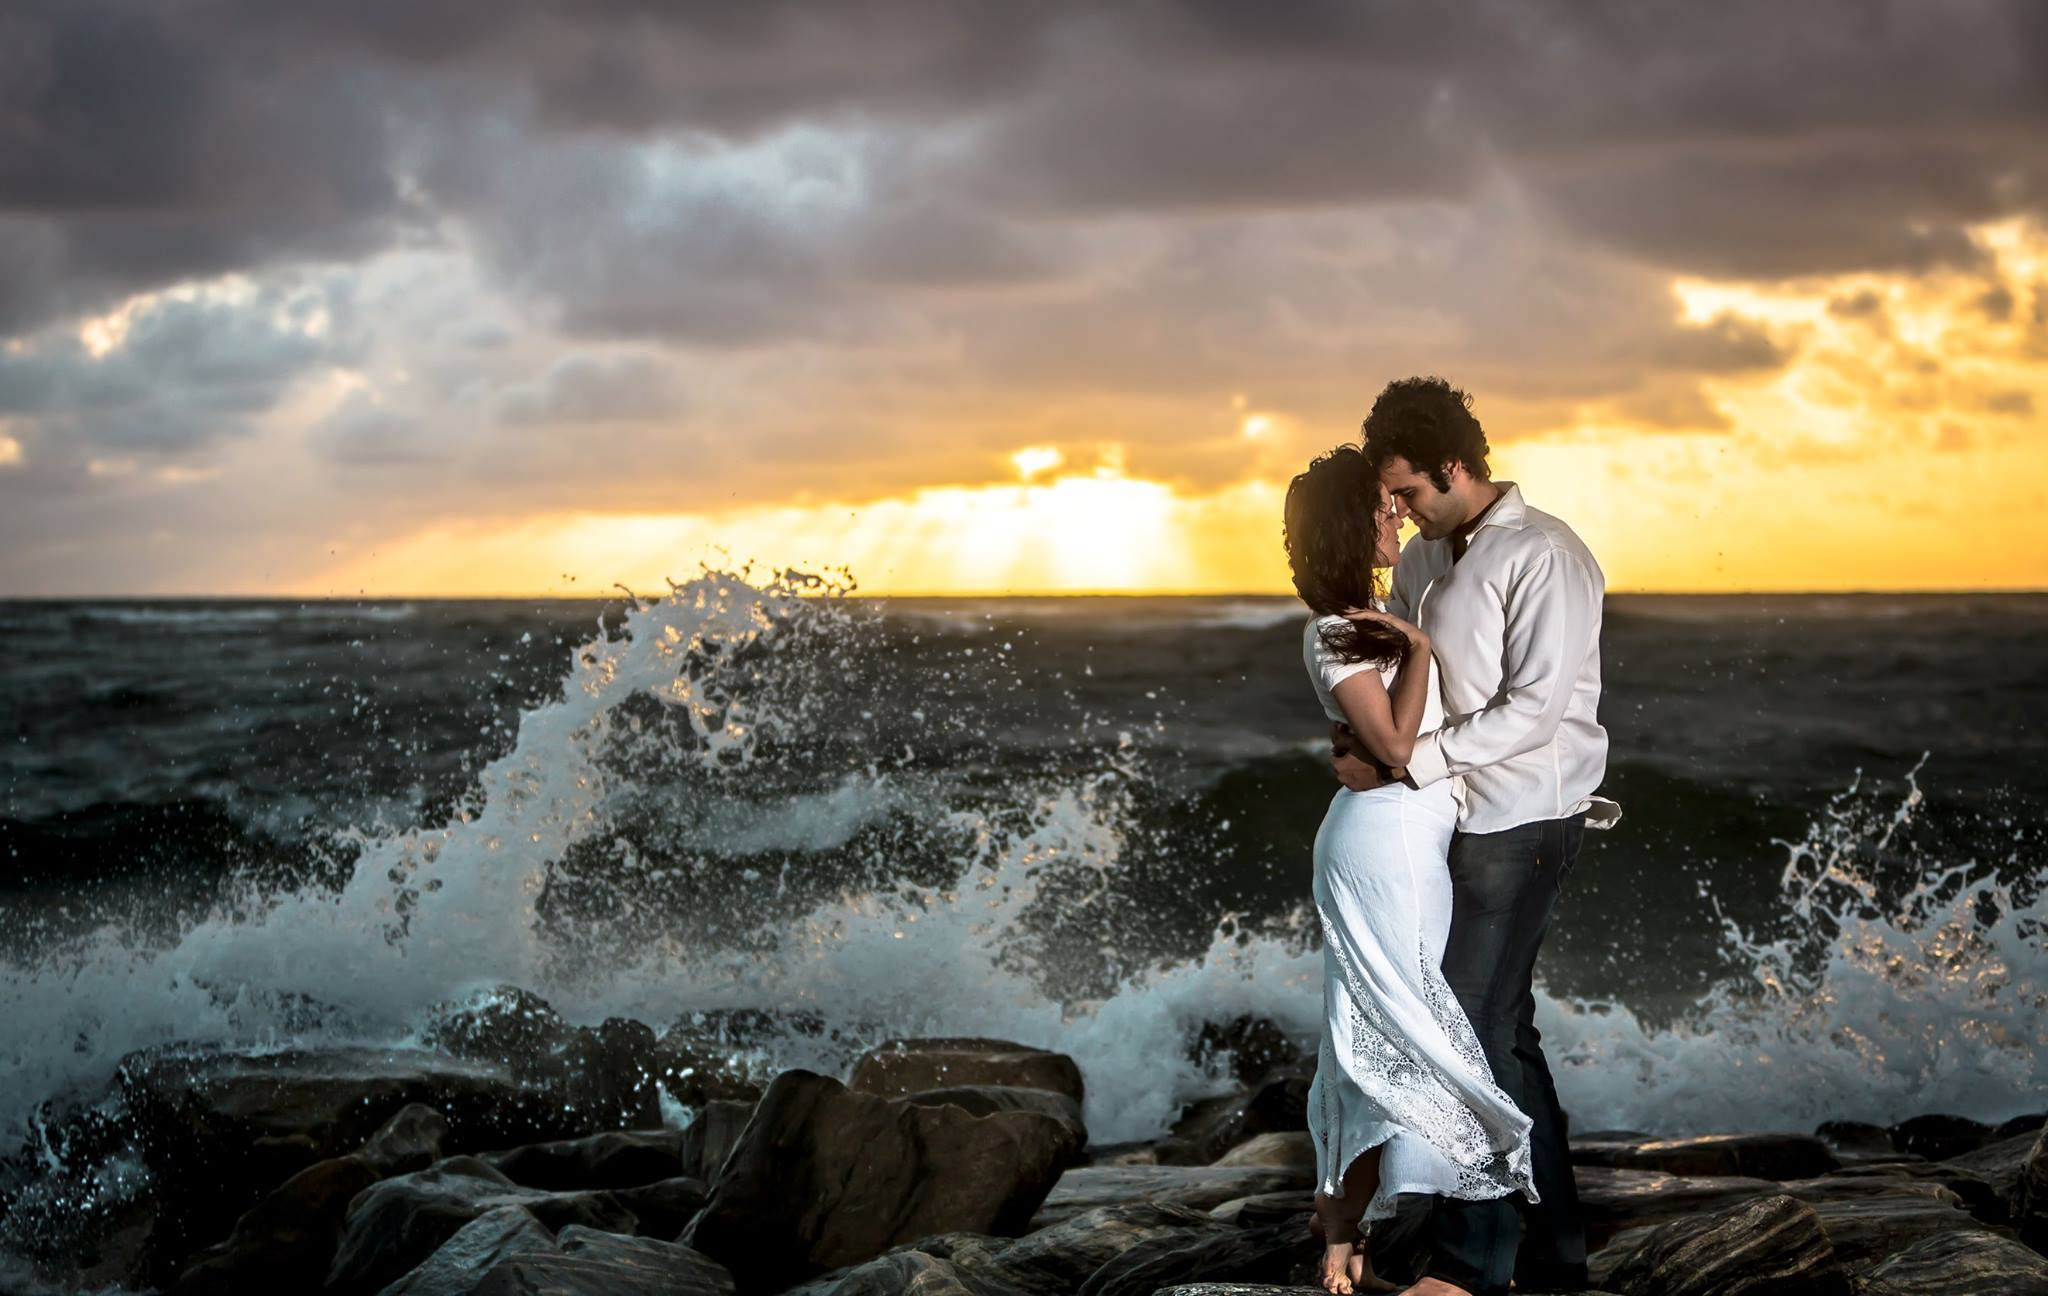 Wedding Photography Video Team Couture Bridal Photography Image of Bride and groom during bridal portraits South Florida